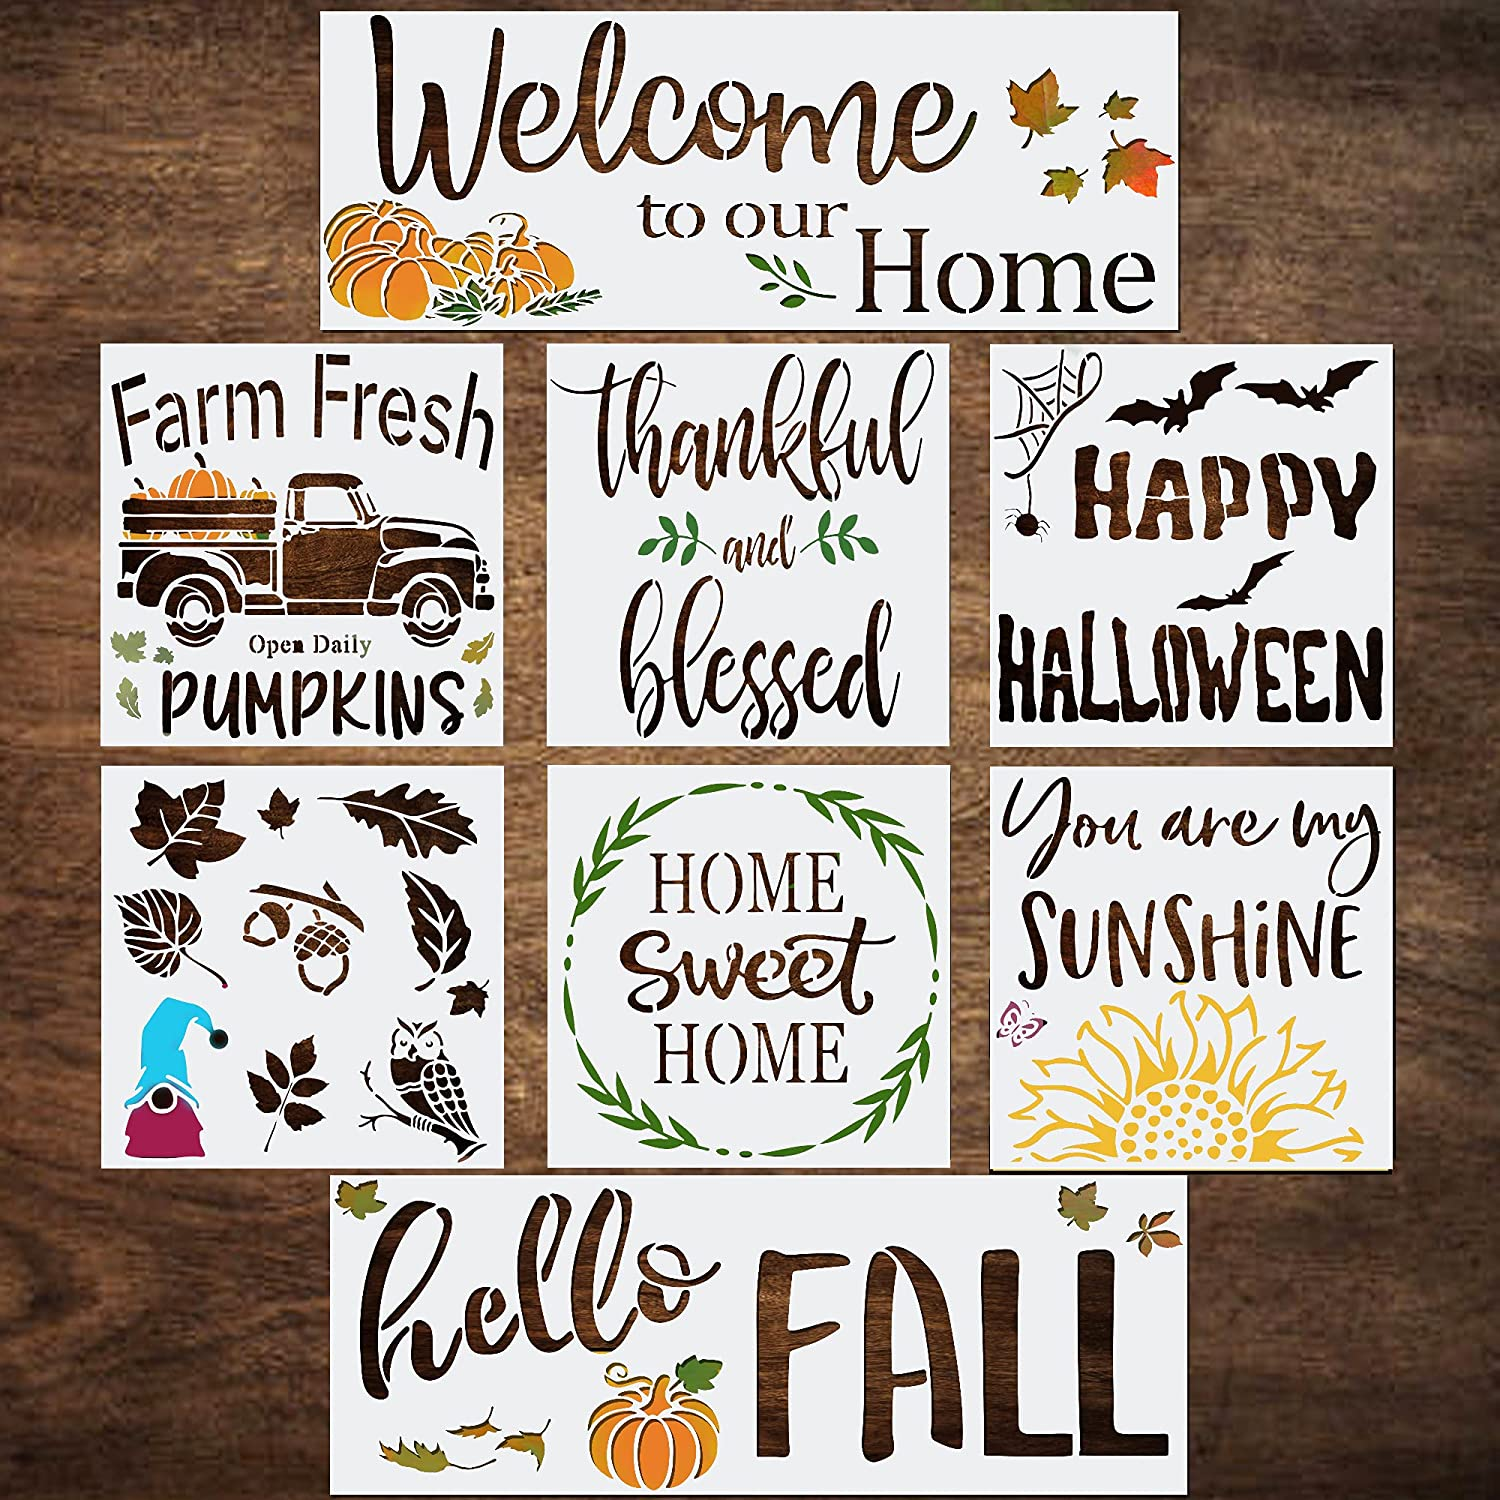 """Large Fall Stencils for Painting on Wood - 10""""x10"""" Home Sweet Home, Farm Fresh, Happy Halloween,Thankful & Blessed - Welcome & Hello Fall Stencil - Holiday & Thanksgiving Stencils - Reusable Stencils"""